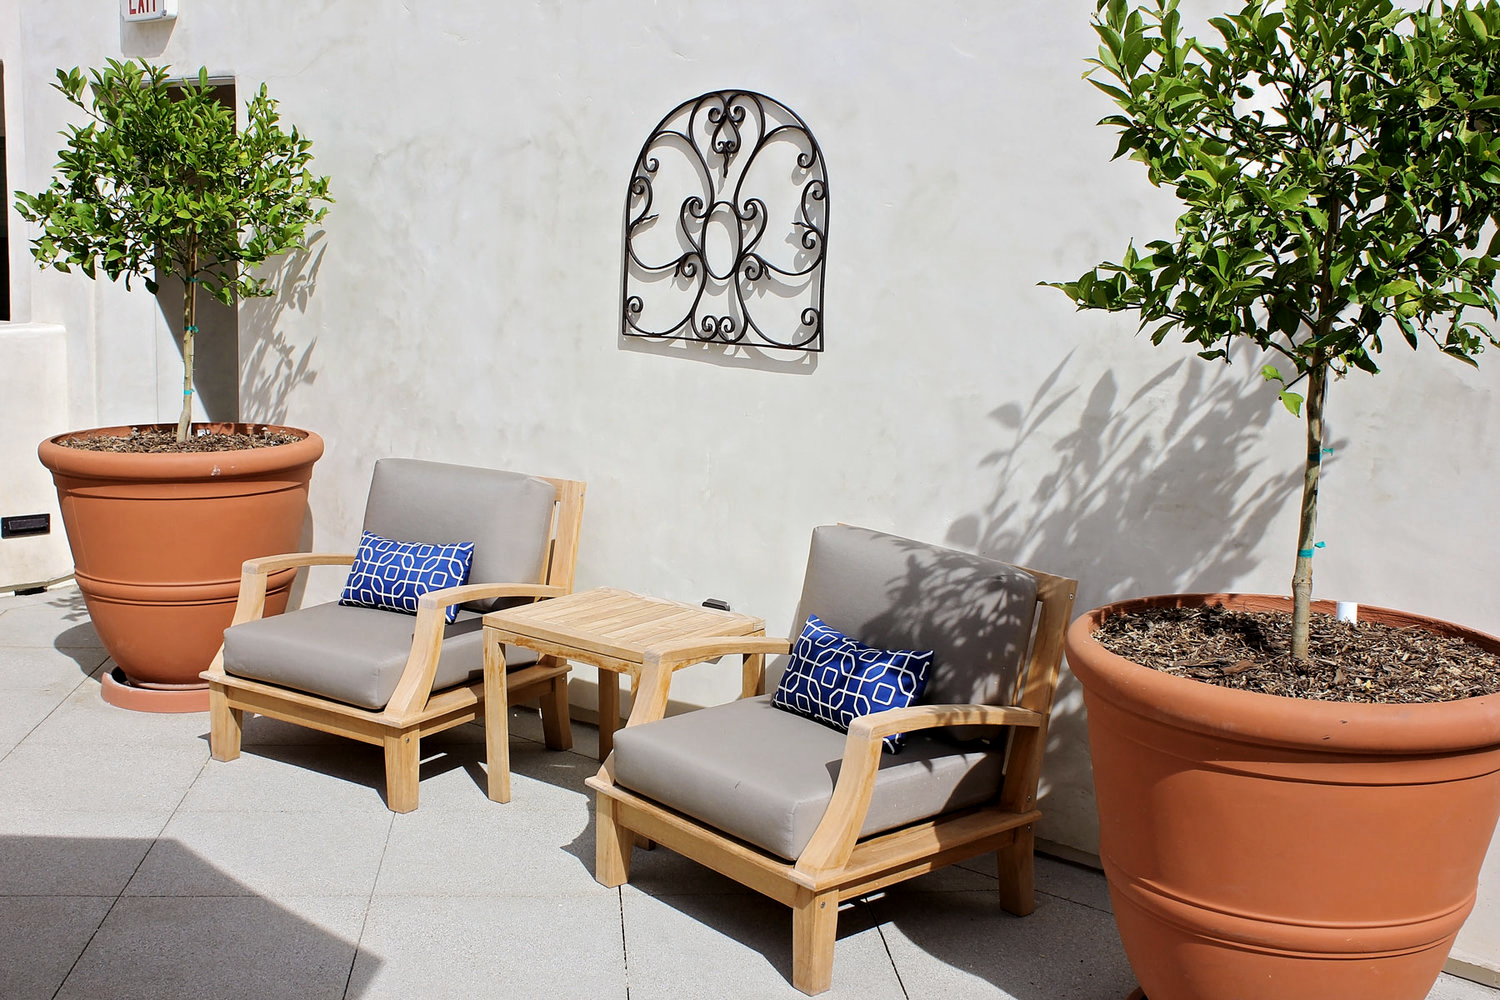 2-spanish-courtyard-patio-terracotta-pot-rollins-andrew.jpg